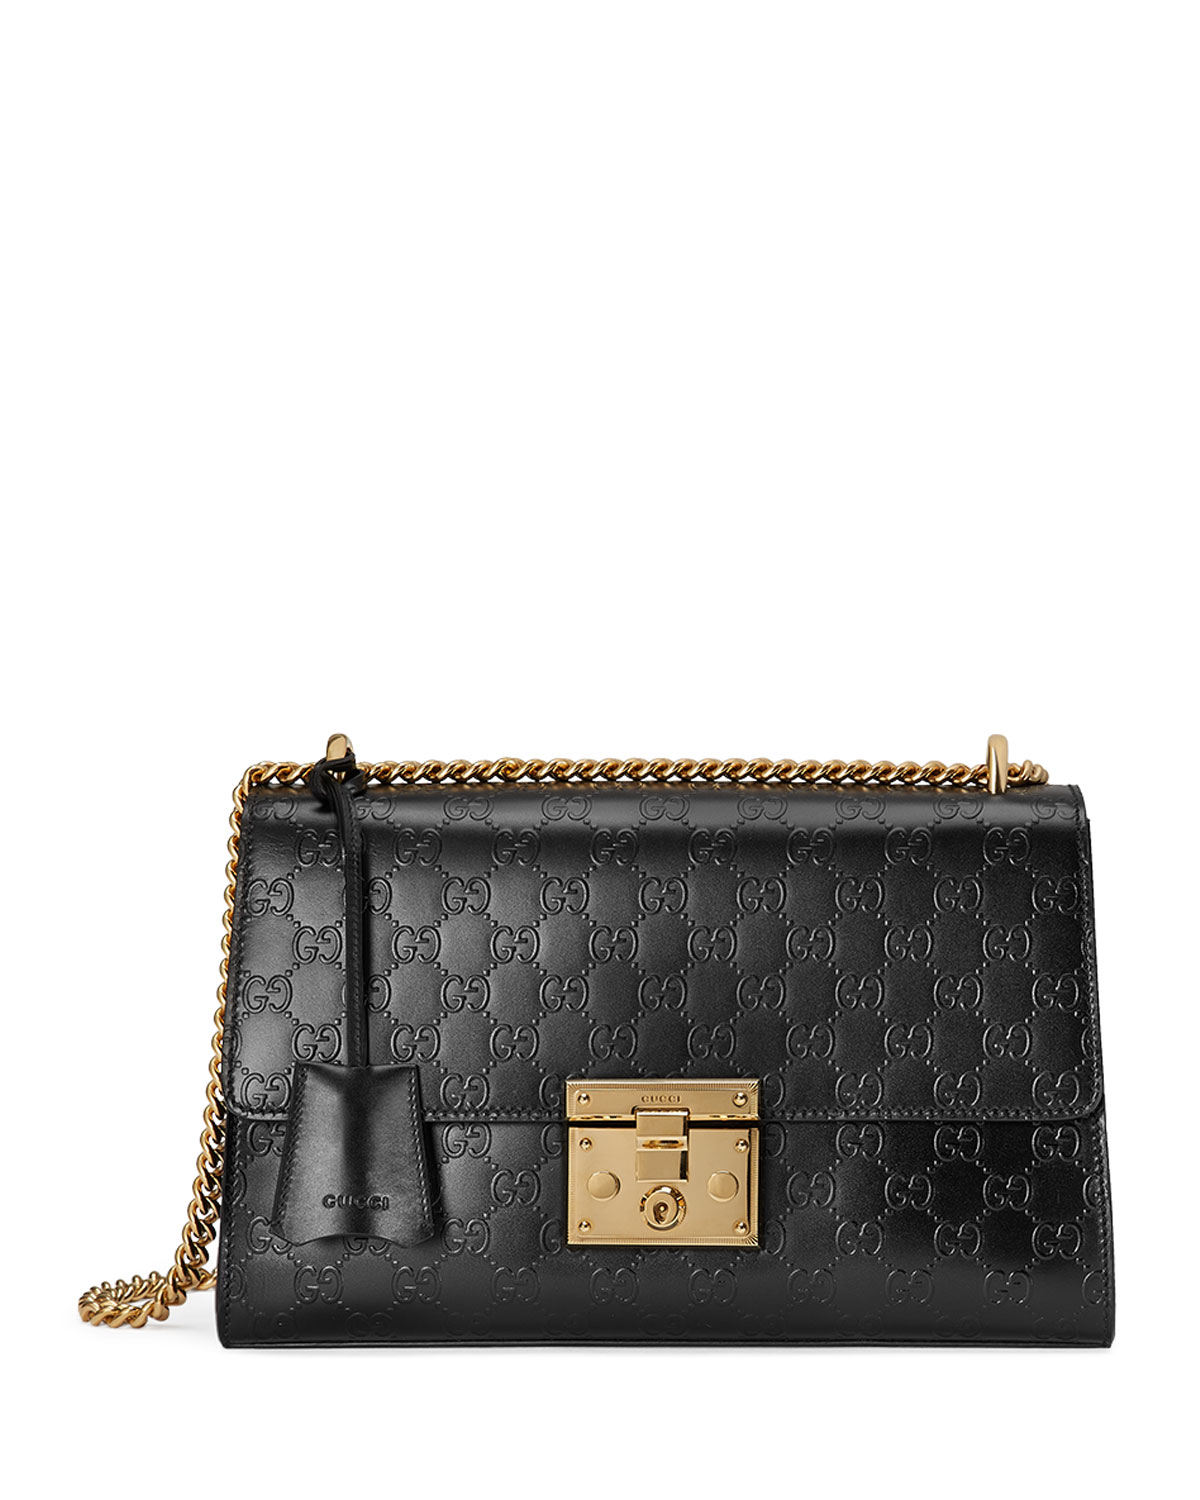 5c1fe89a71c0 Gucci Padlock Medium Guccissima Shoulder Bag, Black | Neiman Marcus